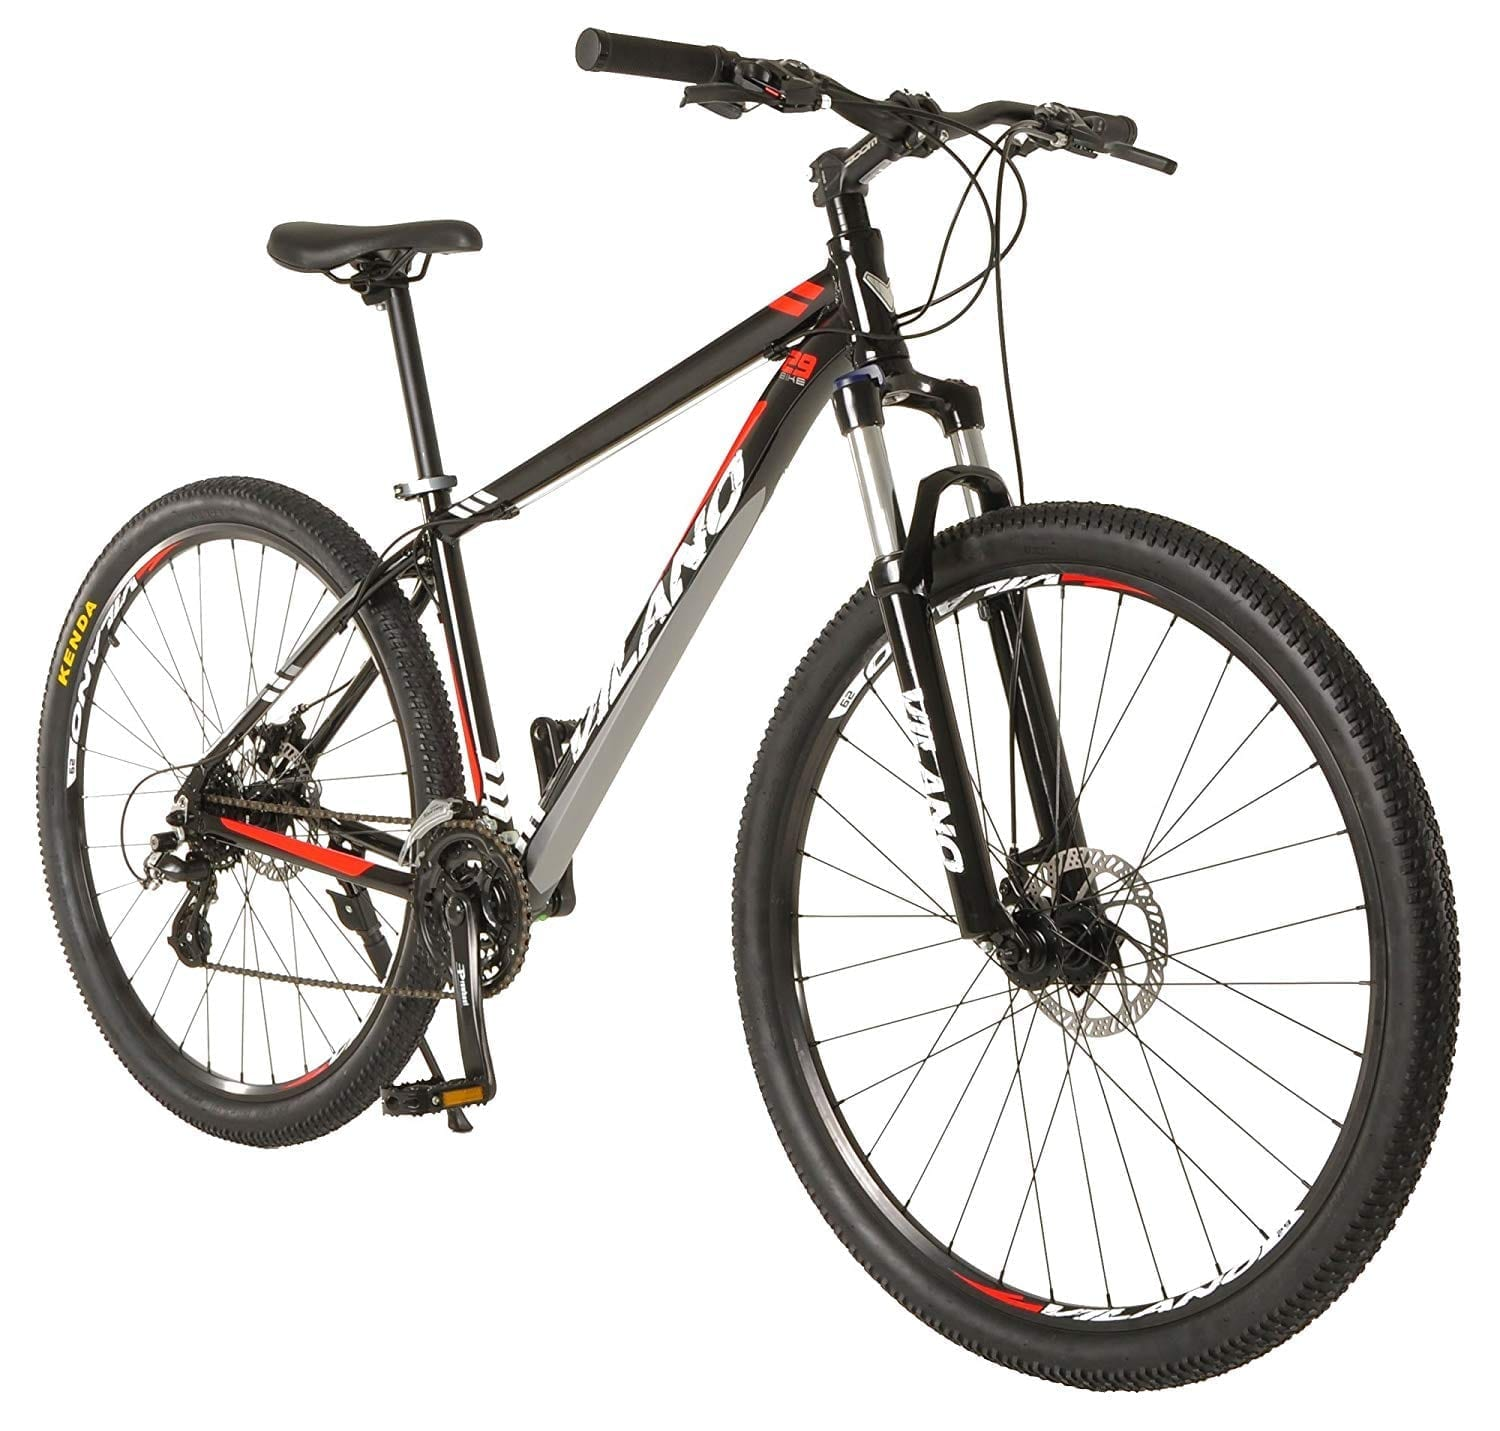 . Vilano Blackjack 3.0 29er Mountain Bike